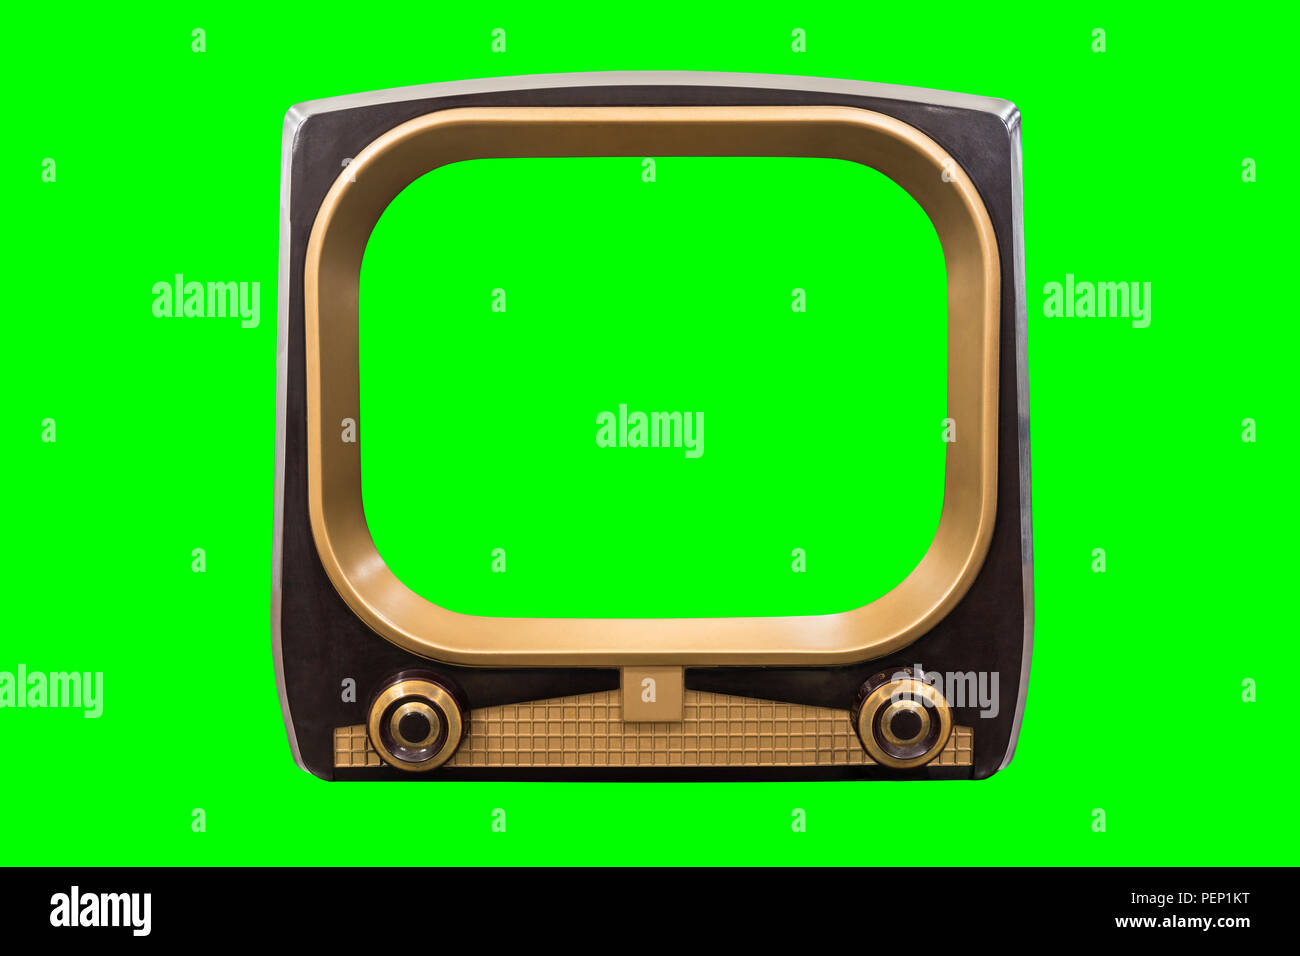 Retro 1950s television with chroma green background and screen. - Stock Image